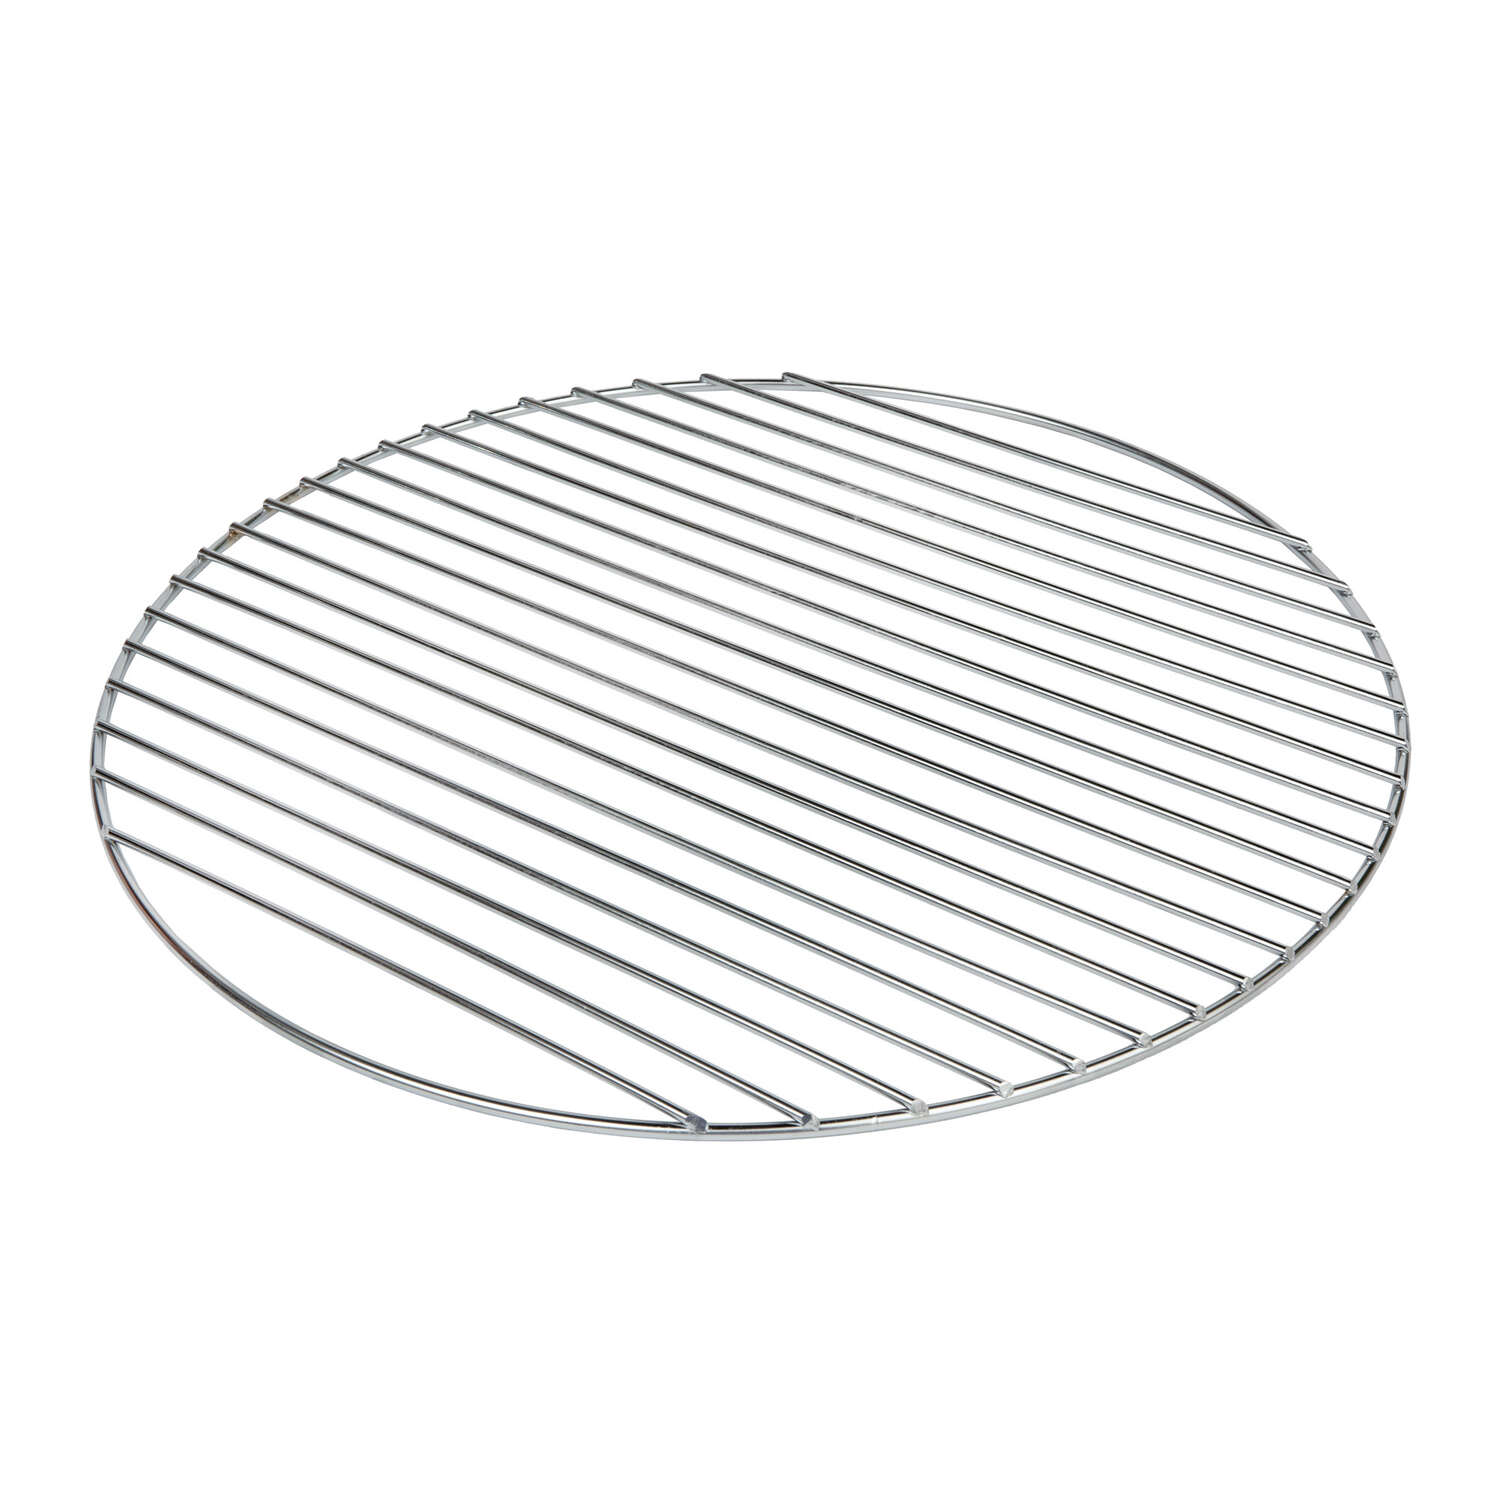 Old Smokey  Plated Steel  Grill Cooking Grate  21 in. W x 21 in. L x 0.5 in. H